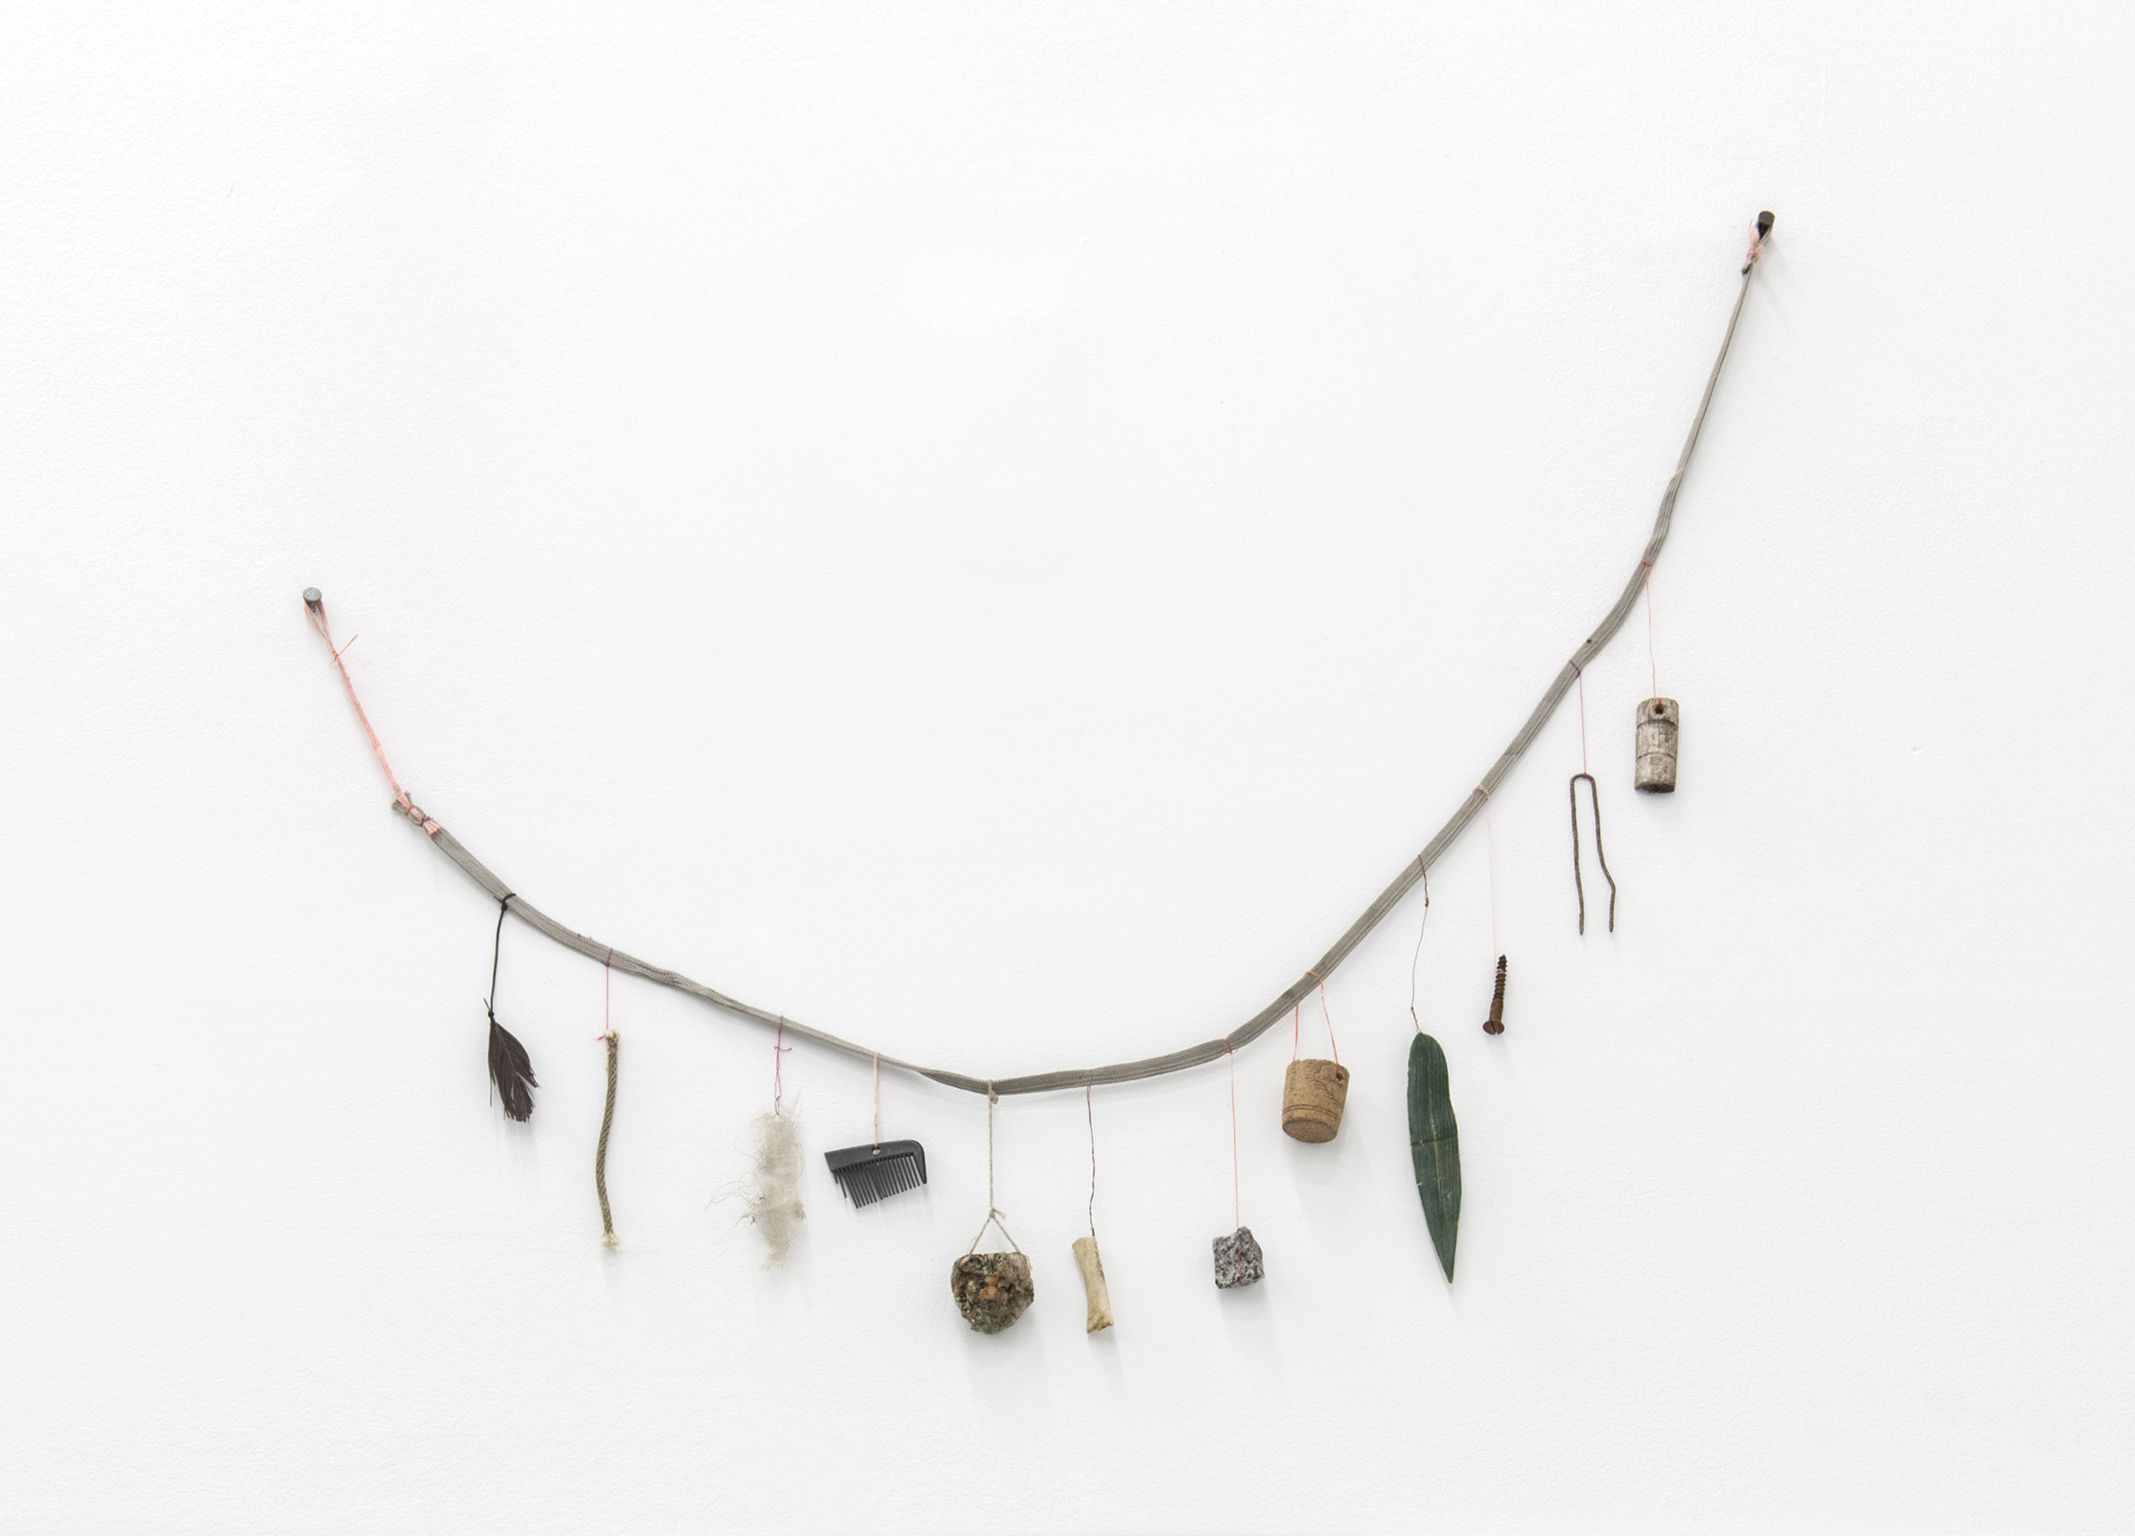 Gareth Moore, Reminder (Vancouver), 2013, shoelace, string, copper wire, wood, metal, artificial leaf, cork, stone, bone, burl, comb, cloth, rope, feather, 19 x 22 x 1 in. (47 x 56 x 2 cm) by